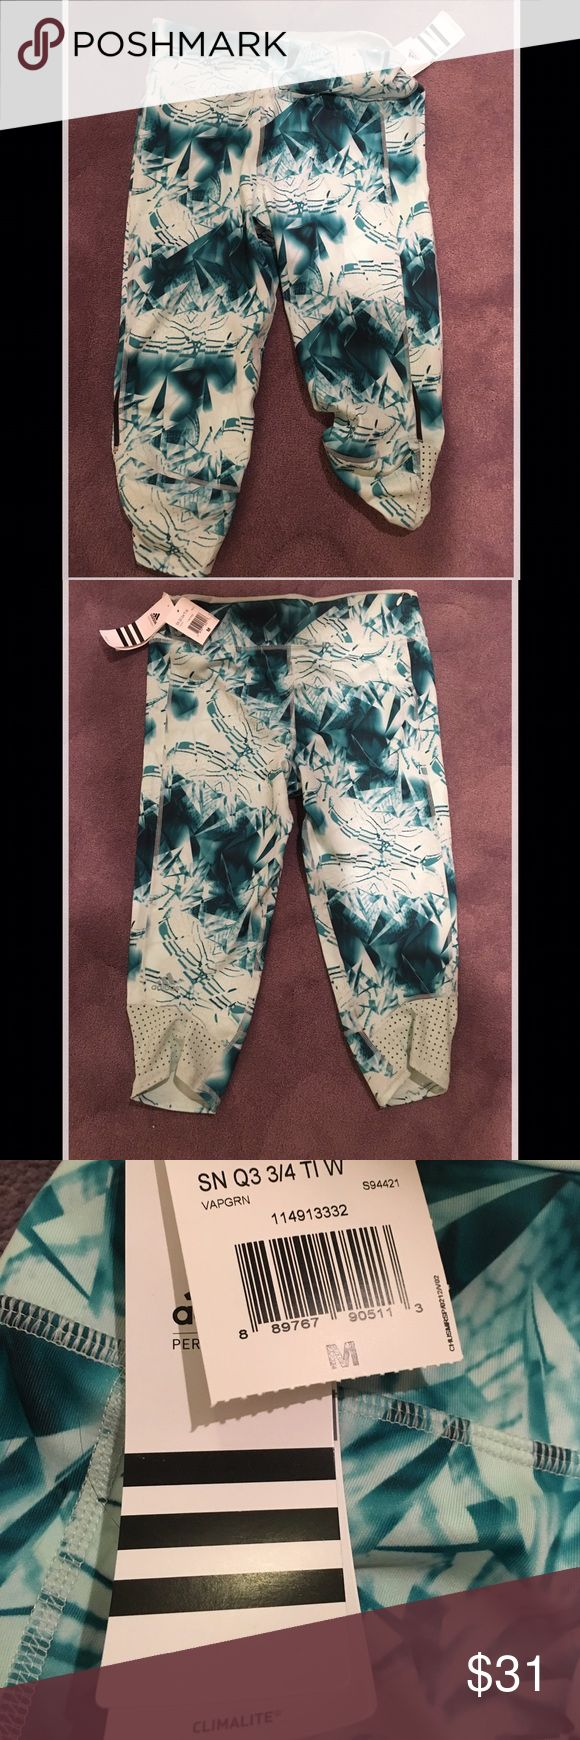 Adidas Supernova Capri workout pants teal print New with tags! Drawstring internal at waist, just below knee length, size Medium. Super soft. Last pic shows a different color, but the fit is the same. Adidas Pants Leggings